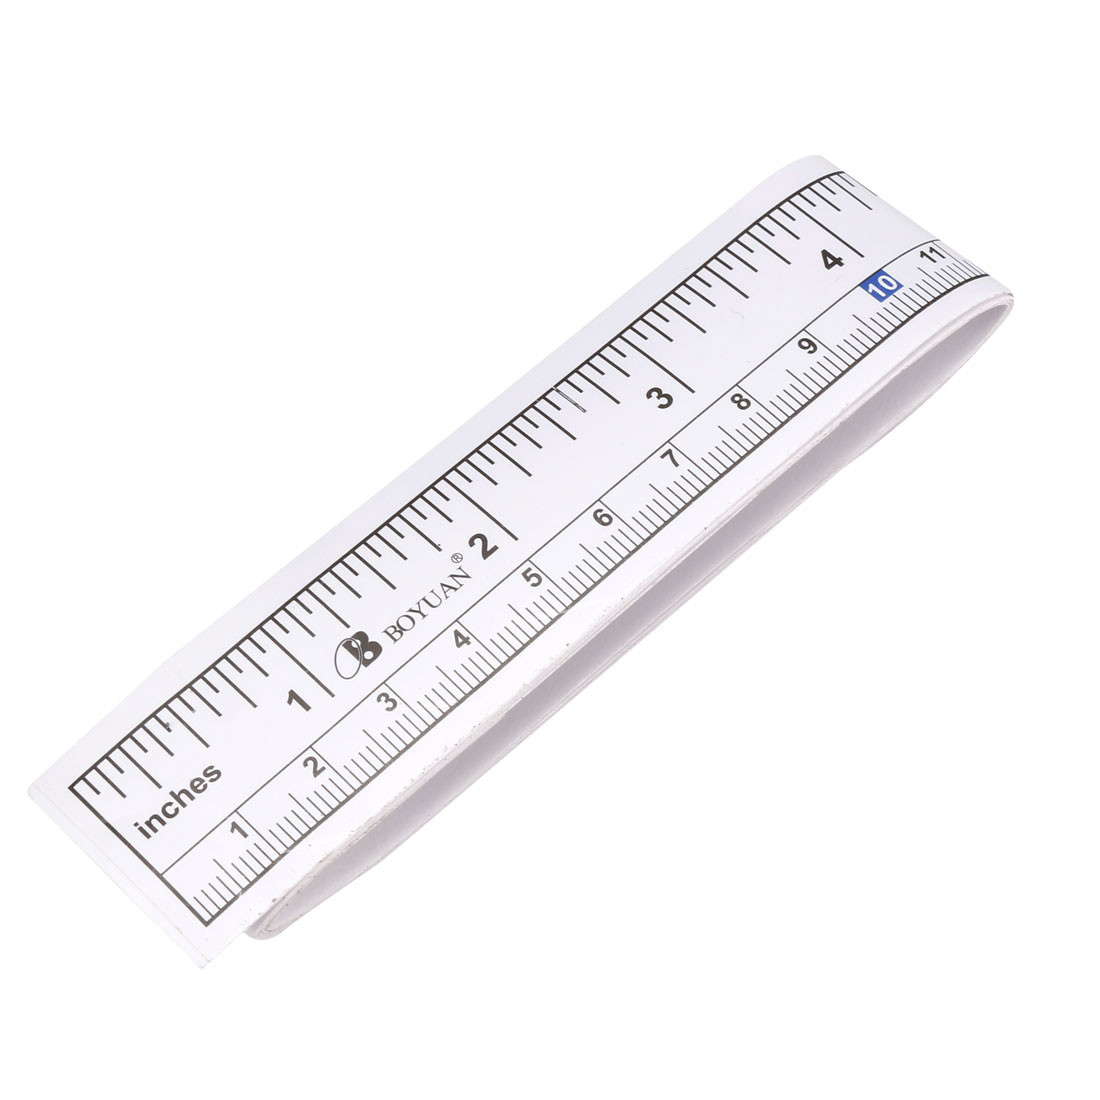 Cloth Tape Measure with Adhesive Backing 90cm 36 Inch Metric Measuring Tape